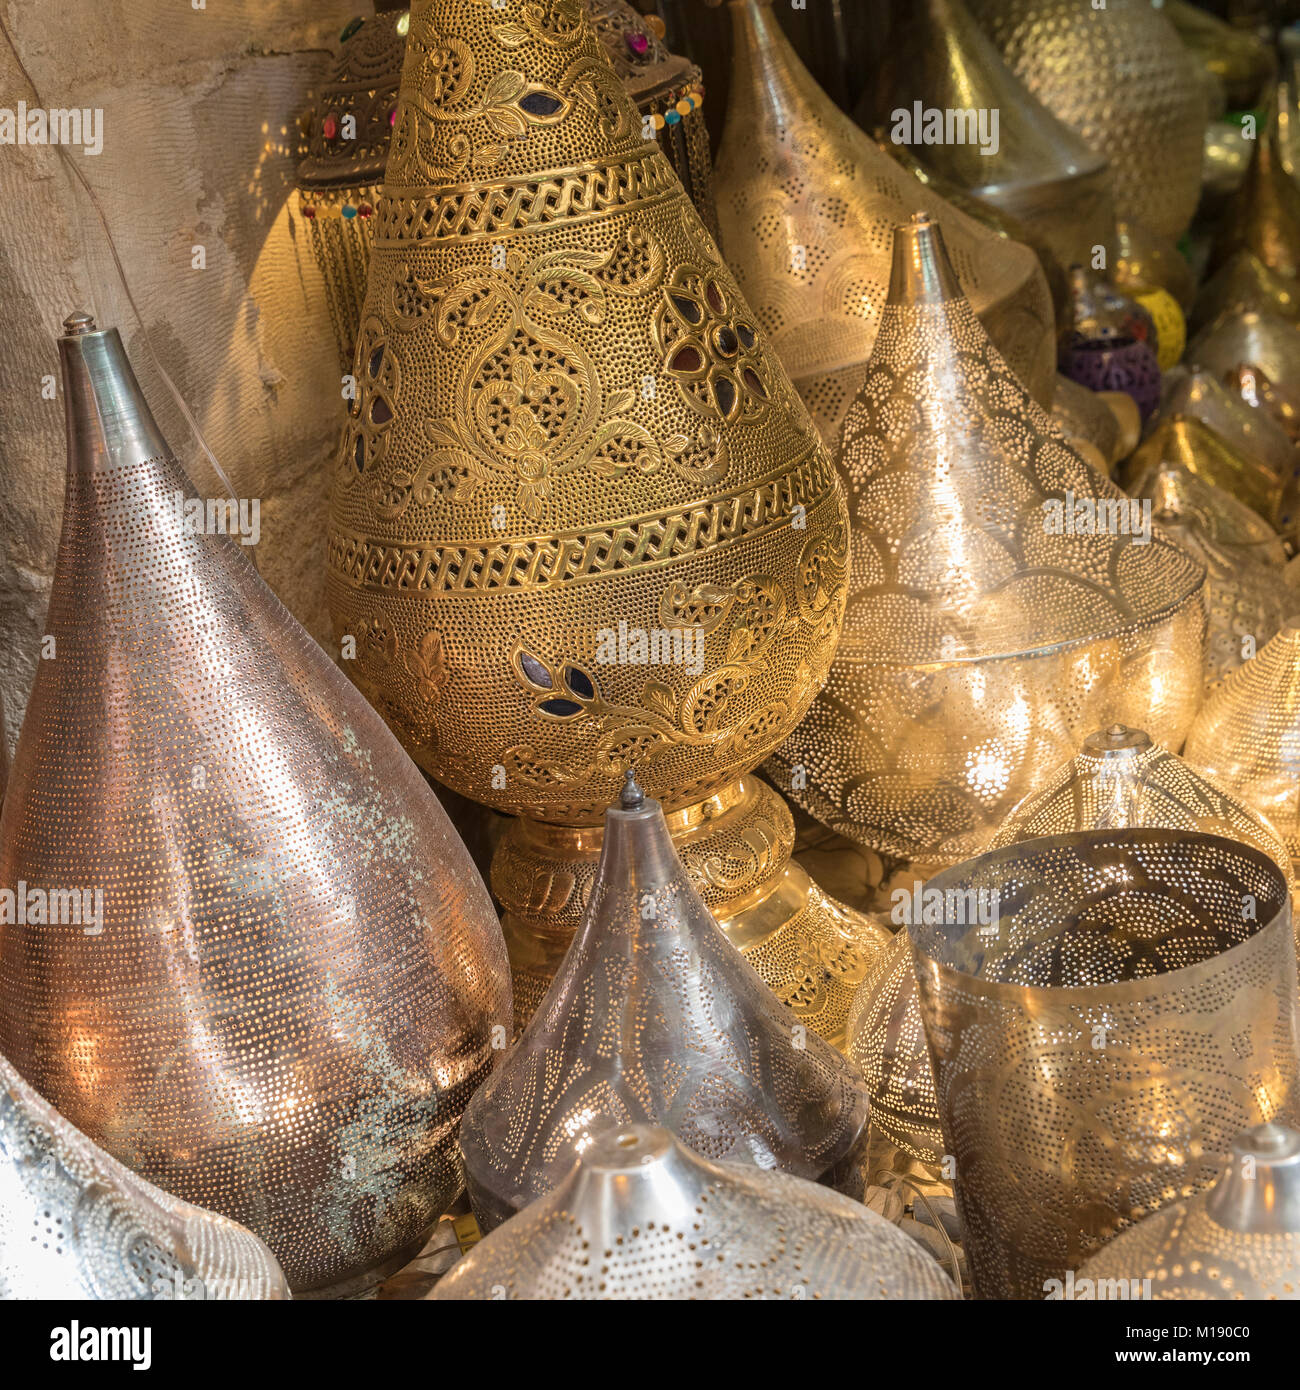 Brass lamps for sale in Sharia Al Moez L'din Allah Al Fatmi street in Fatimid Cairo - Stock Image